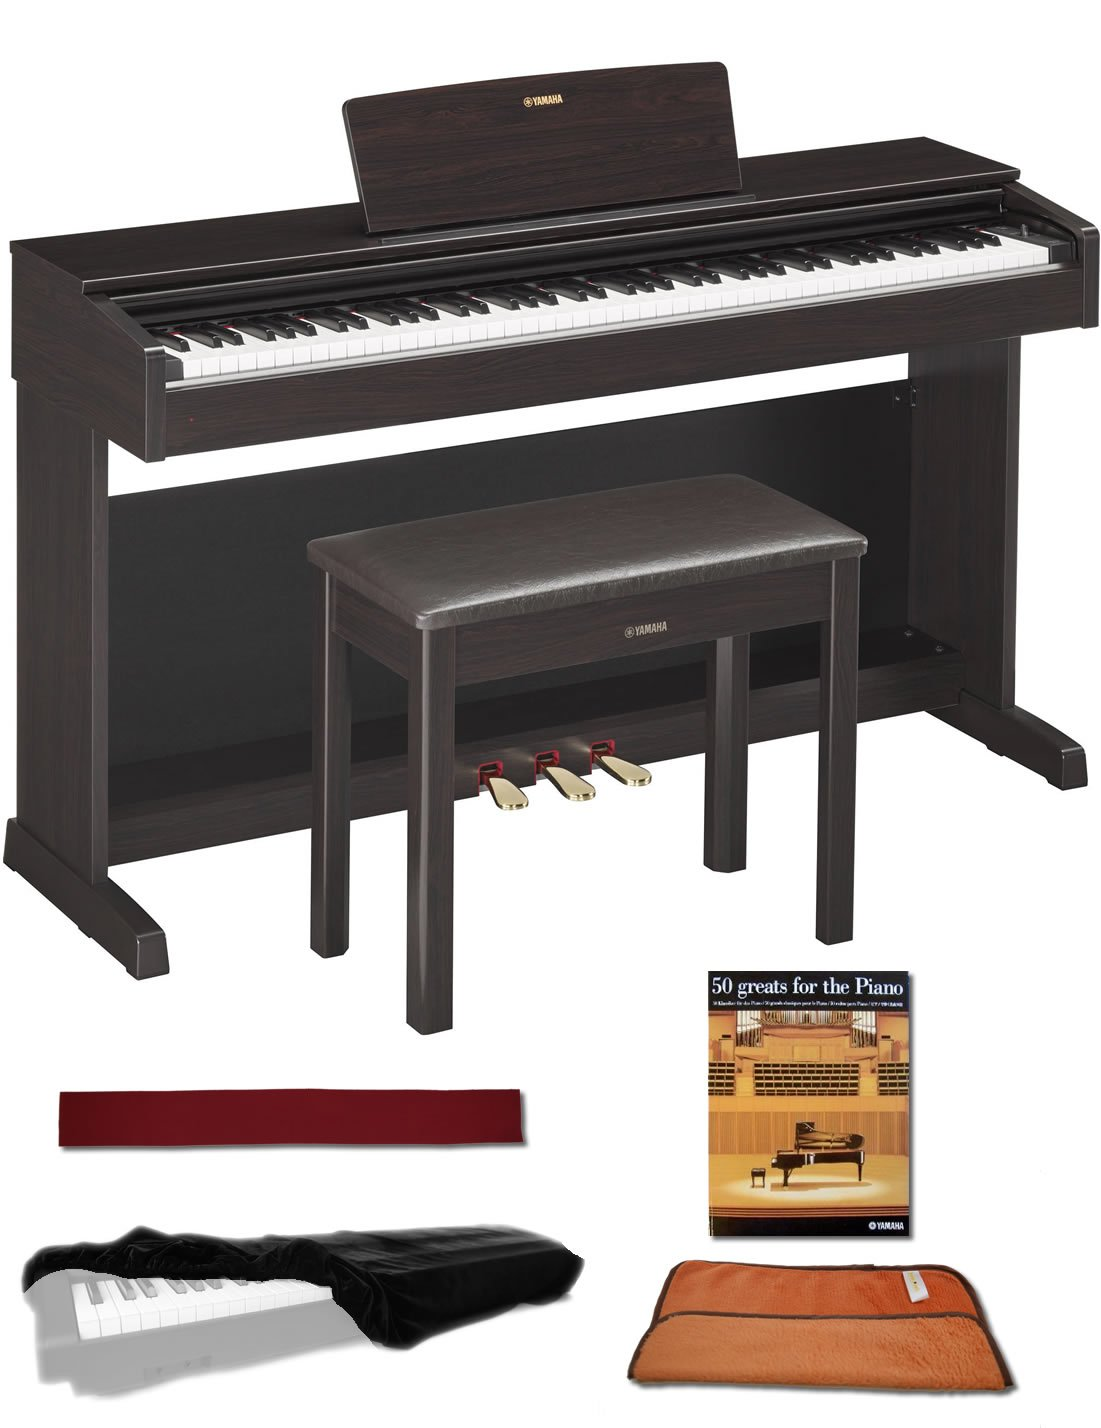 Yamaha YDP143R Rosewood 88 Weighted Keys Digital Piano keyboard Bundle with Matching Bench, Juliet Music Piano Dust Cover, Key Cover, Polish Cloth and Manuscript Book